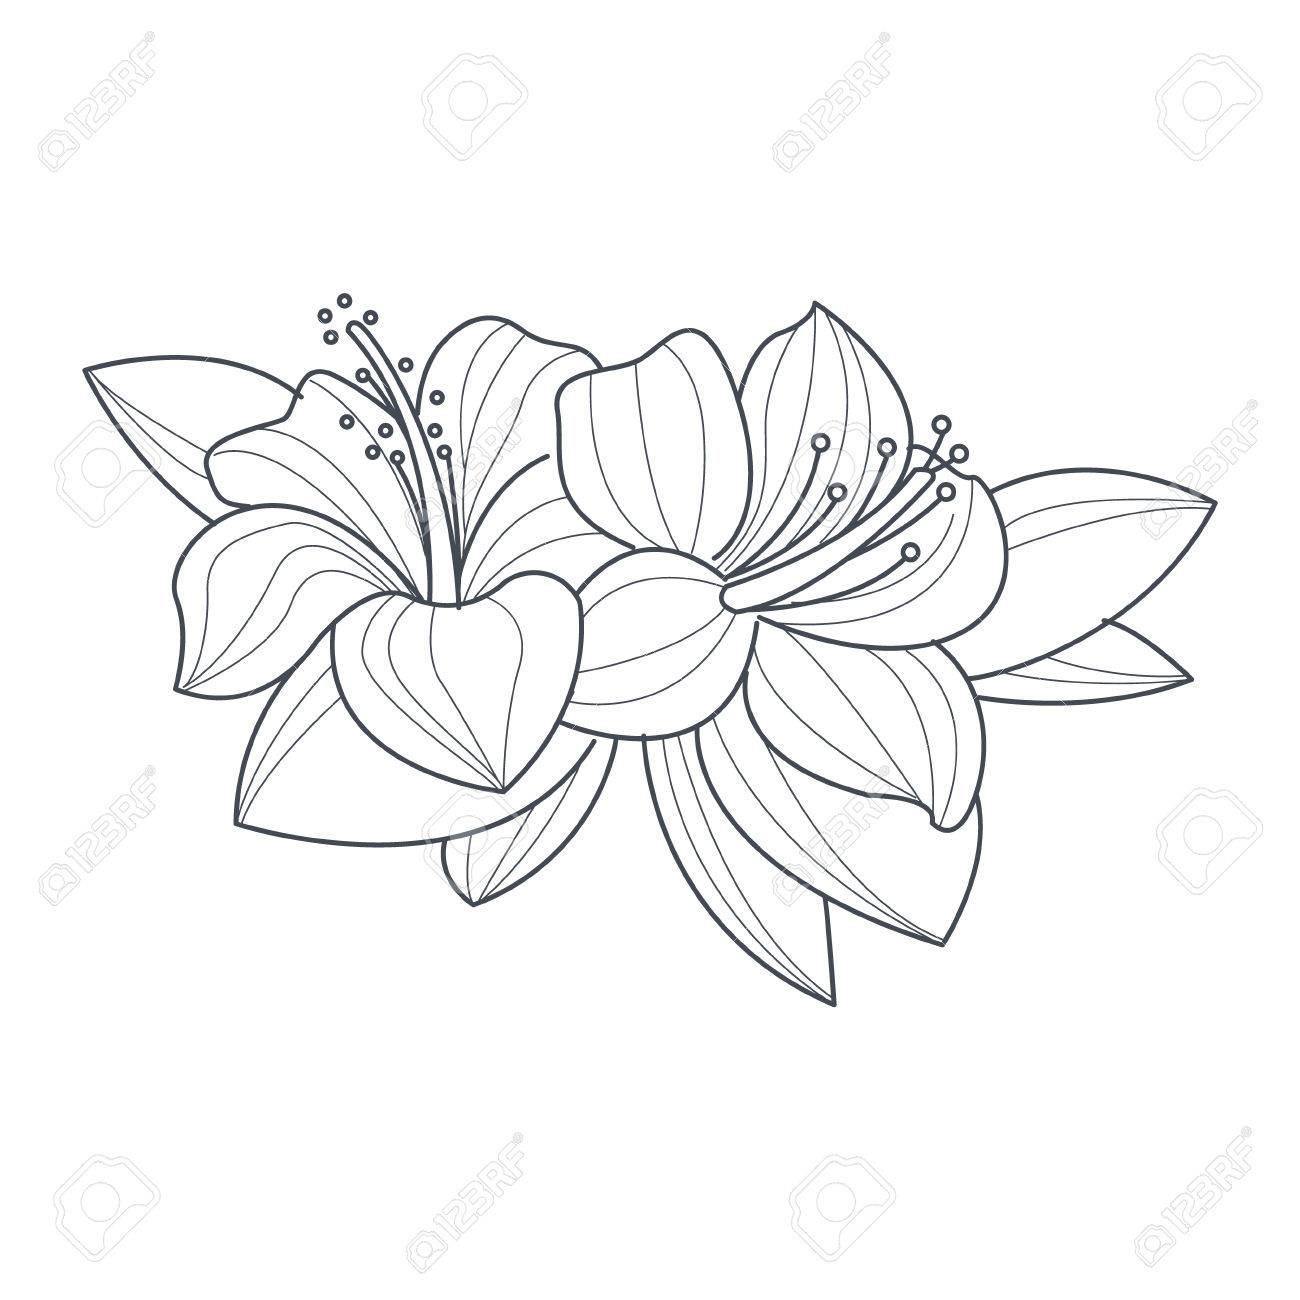 1300x1300 Hibiscus Flower Monochrome Drawing For Coloring Book Hand Drawn